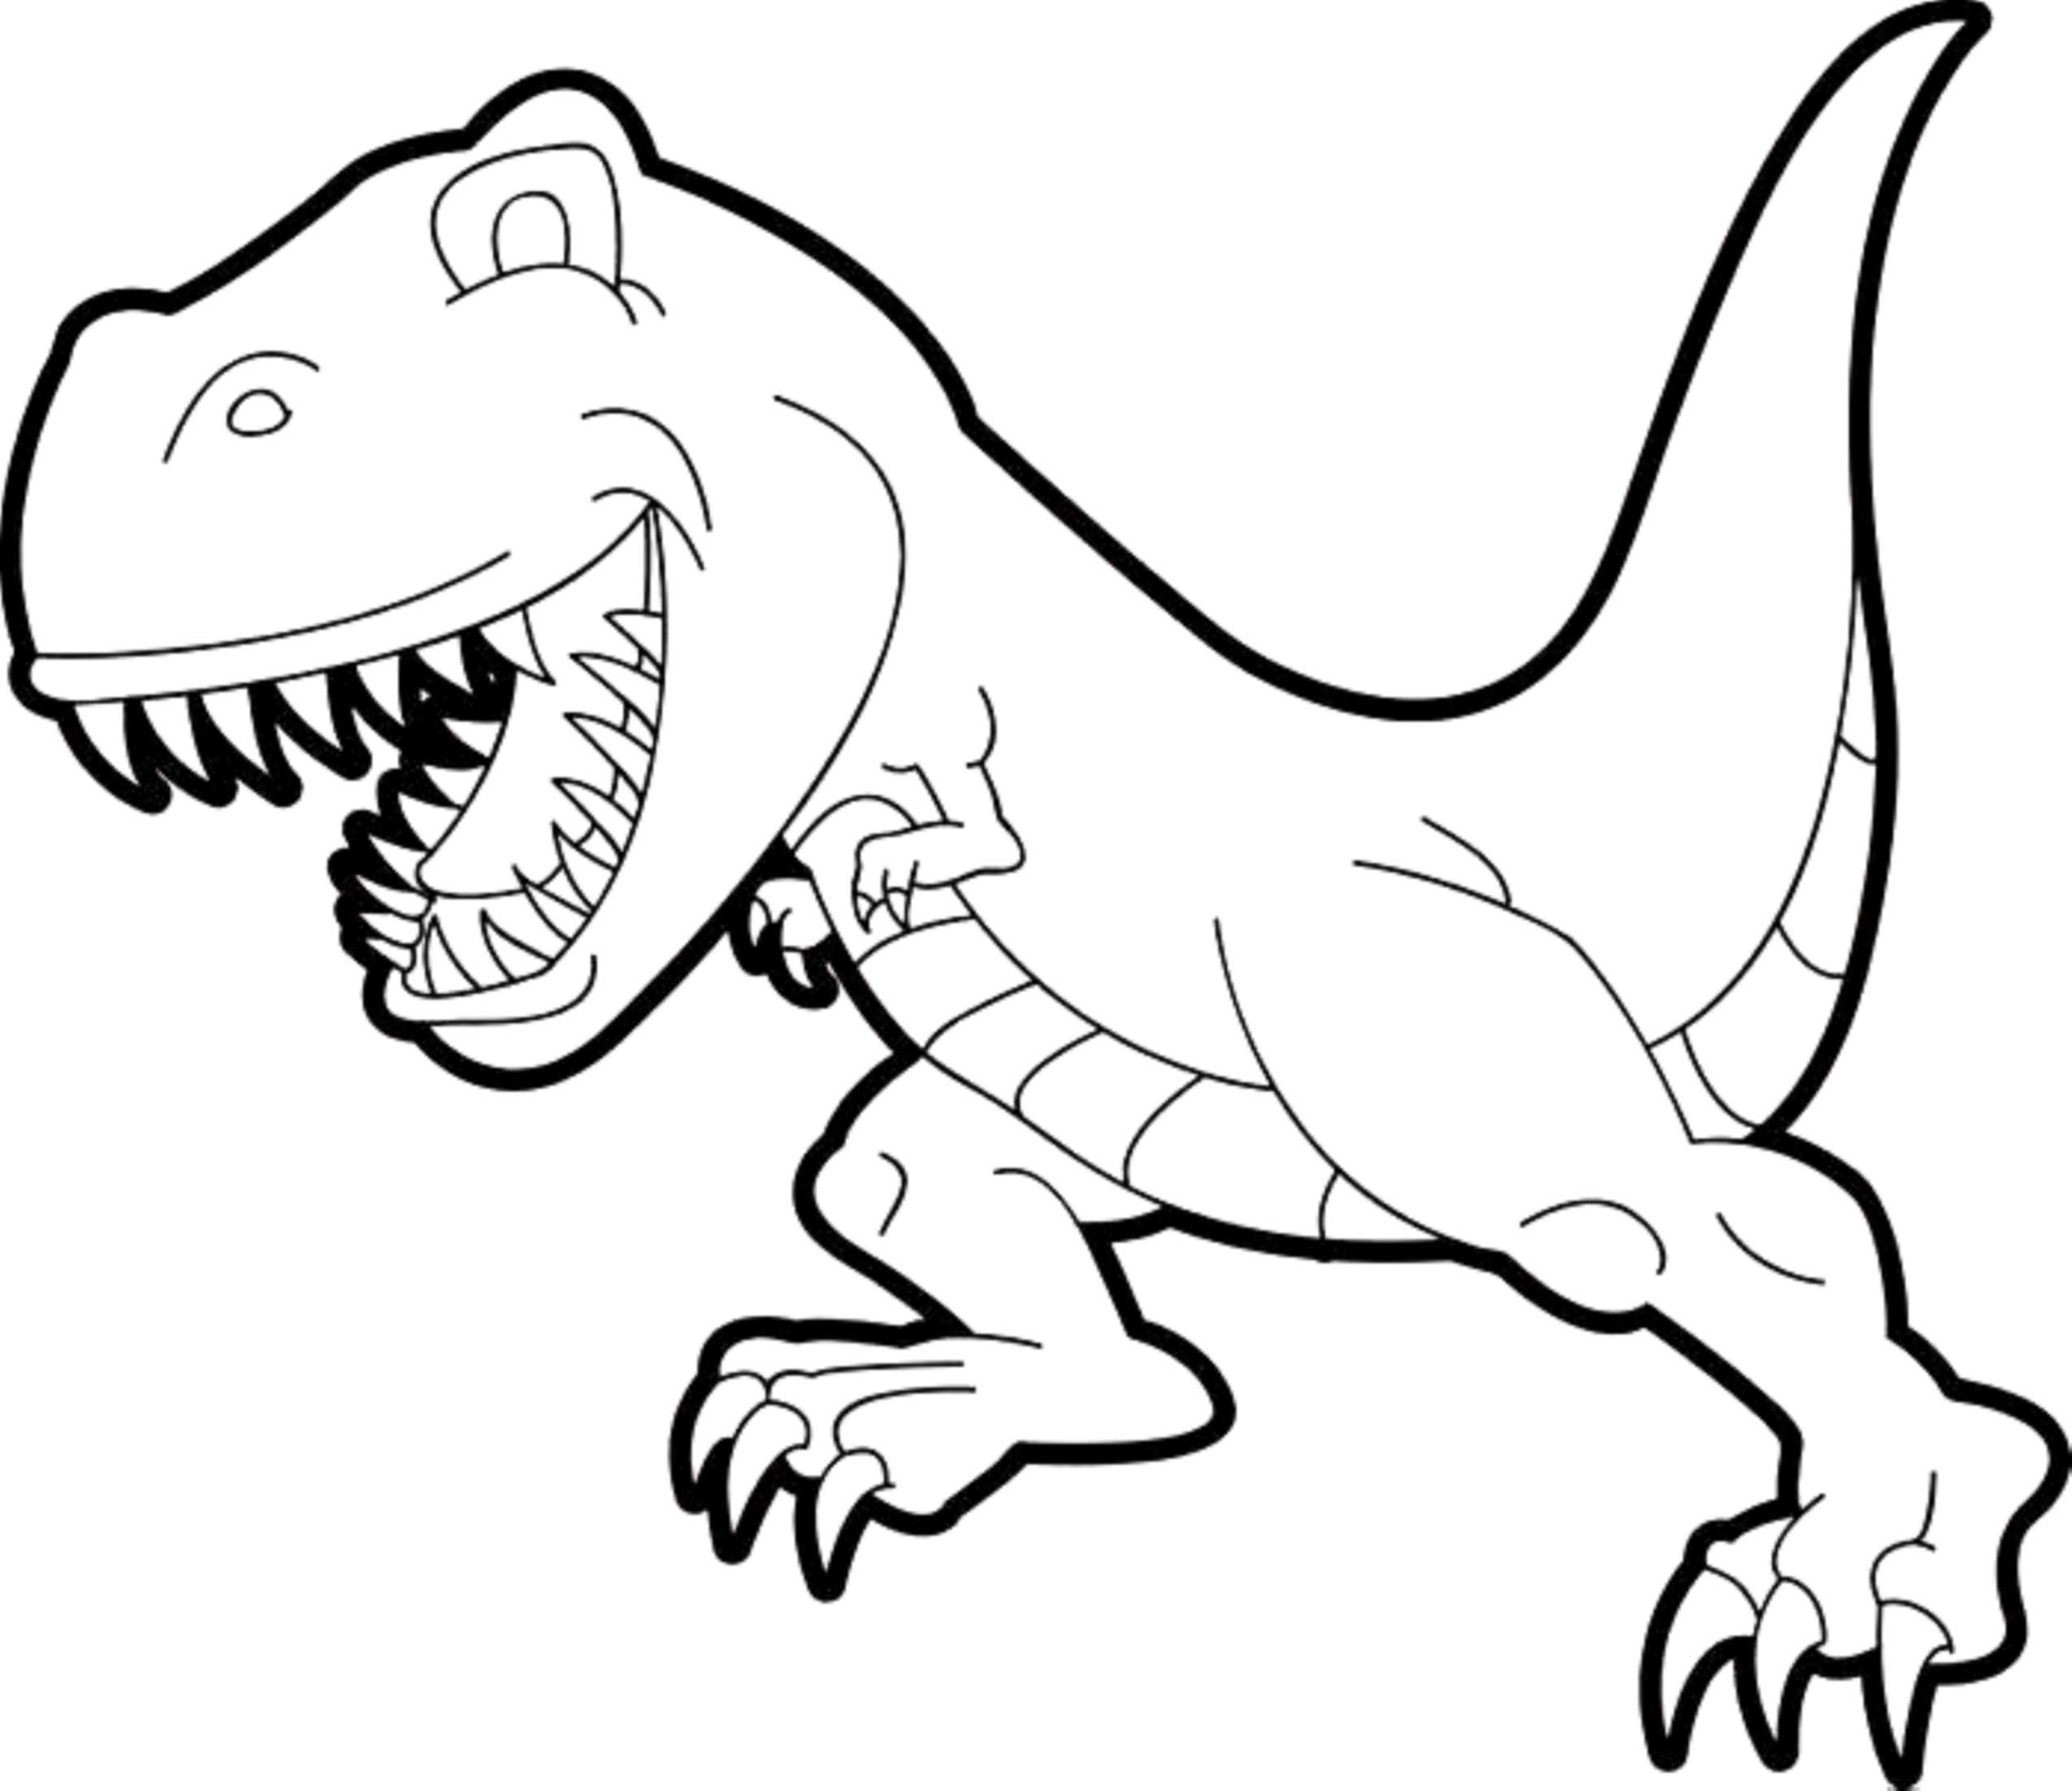 dinosaur colouring pictures to print dinosaur coloring pages for kids to print dinosaur colouring pictures